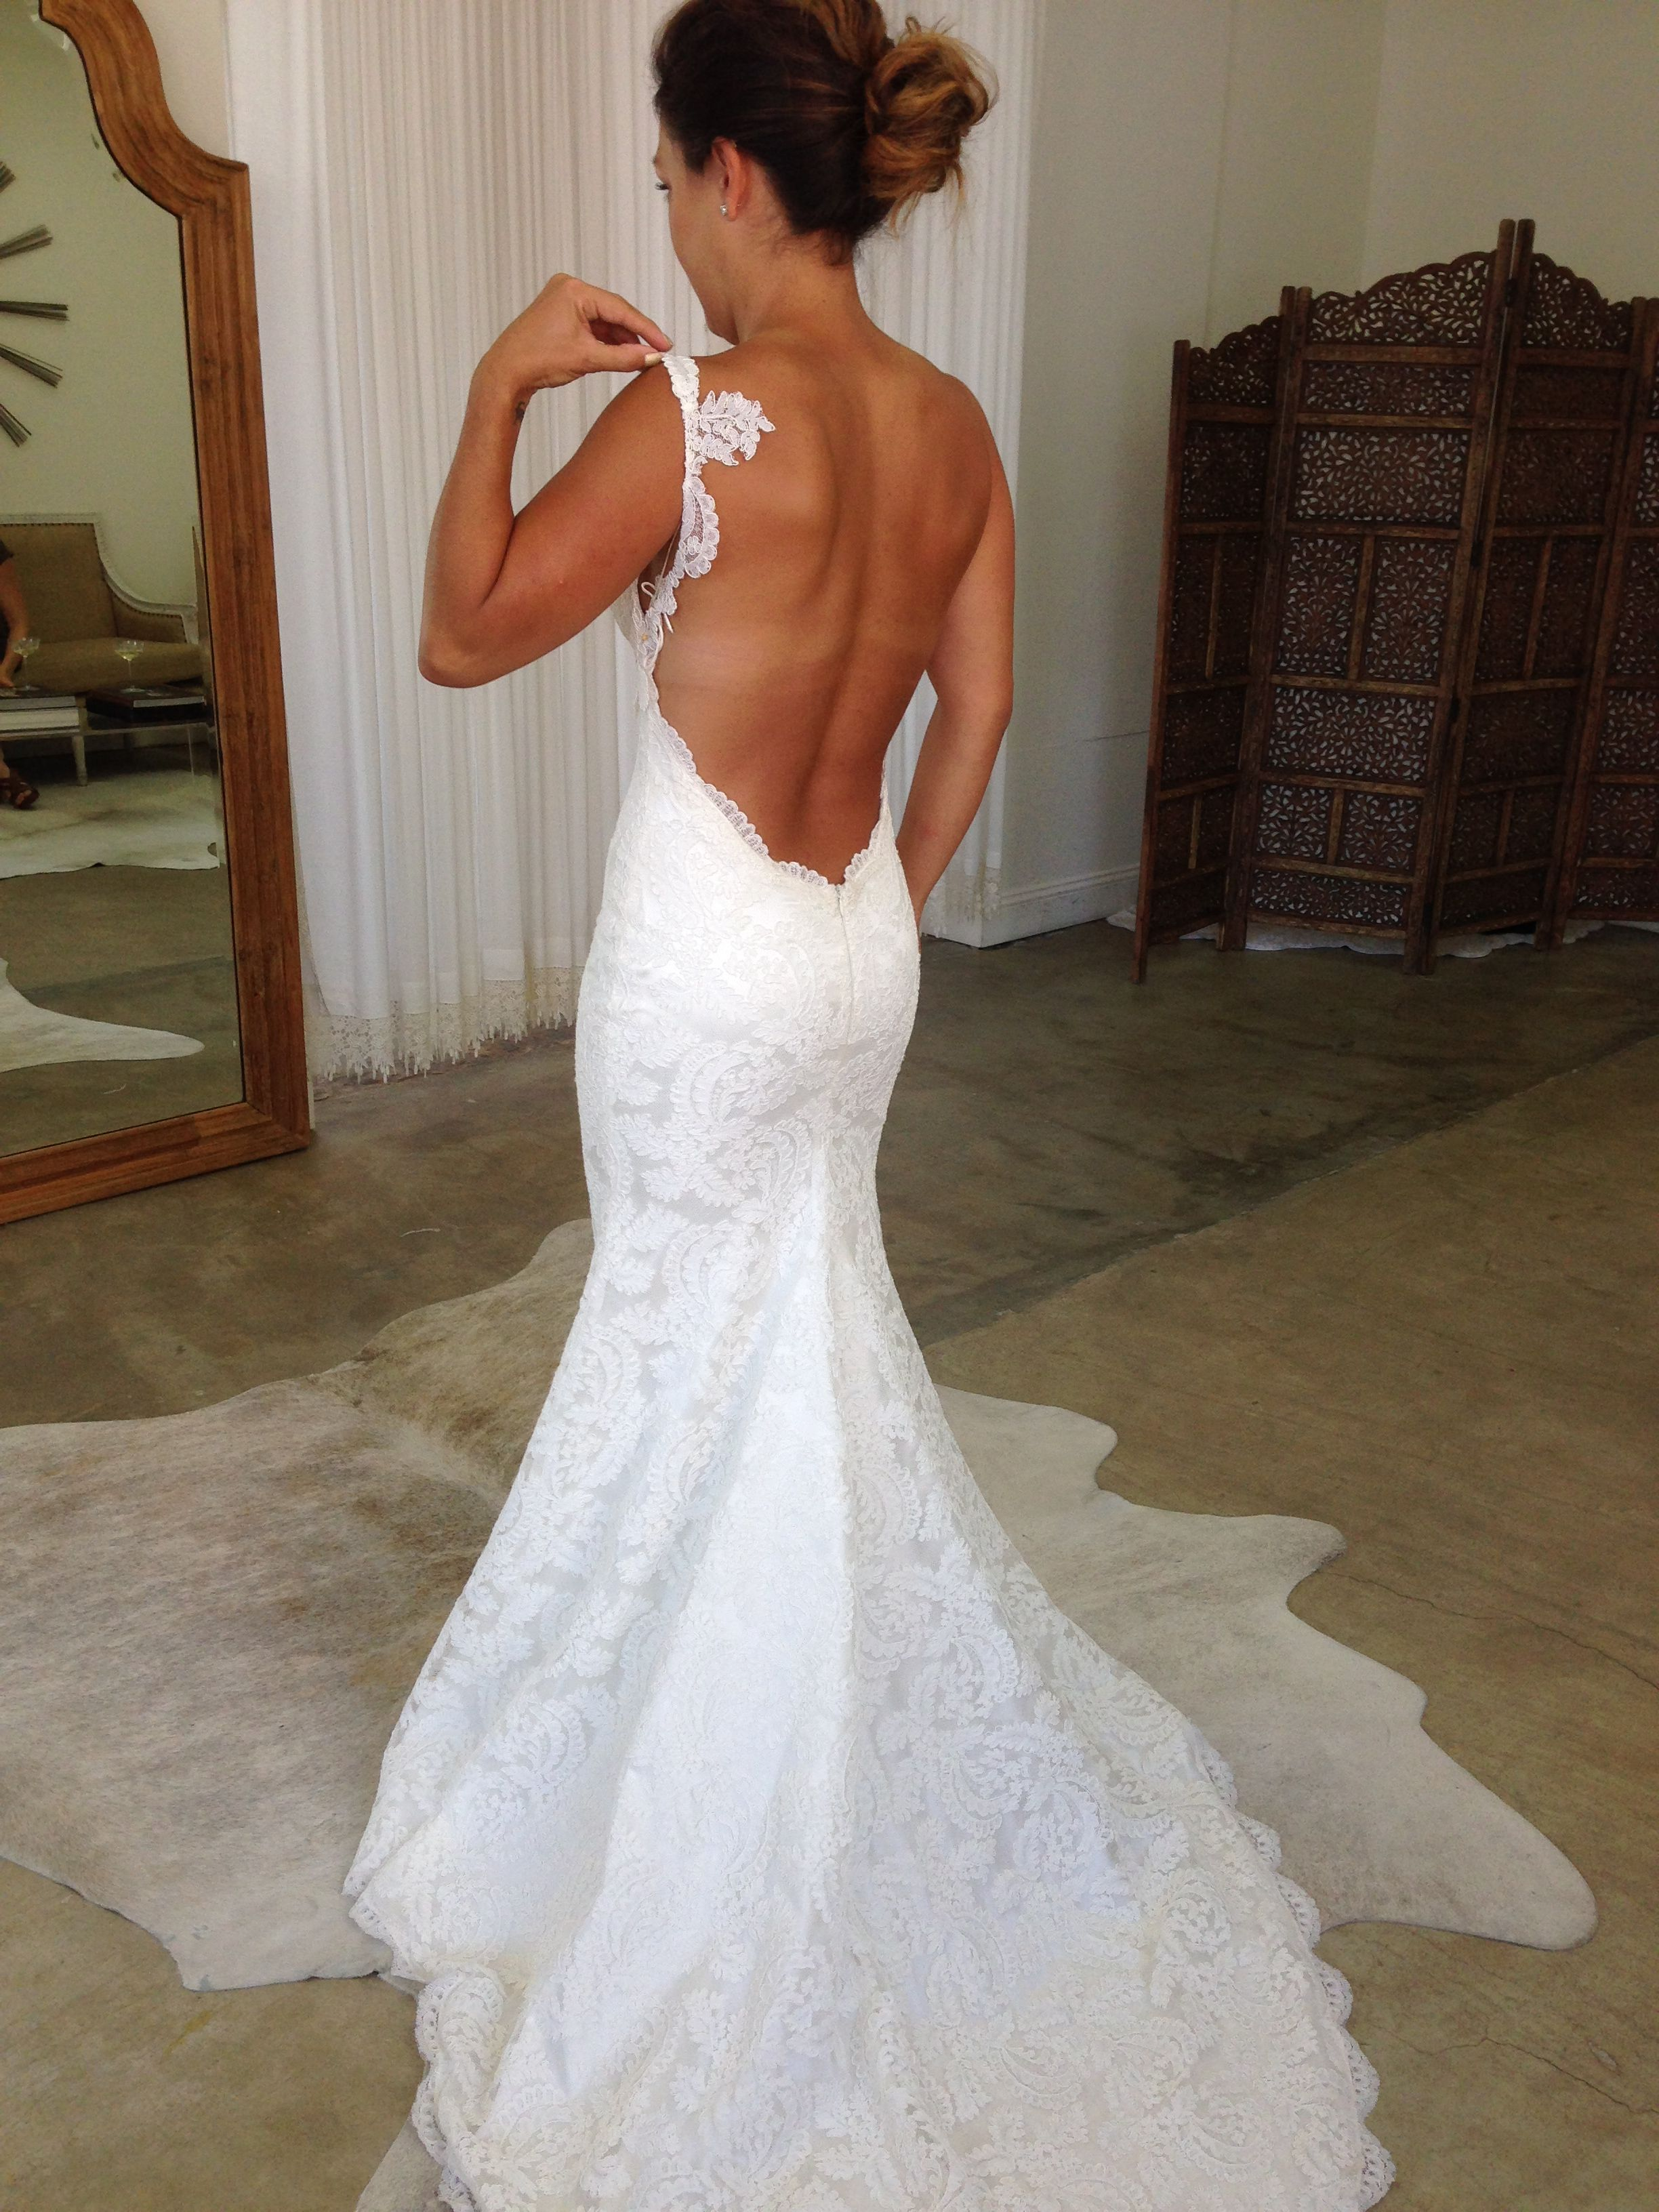 Katie May LANAI Size 4 Wedding Dress | Lanai, Wedding and Wedding dress